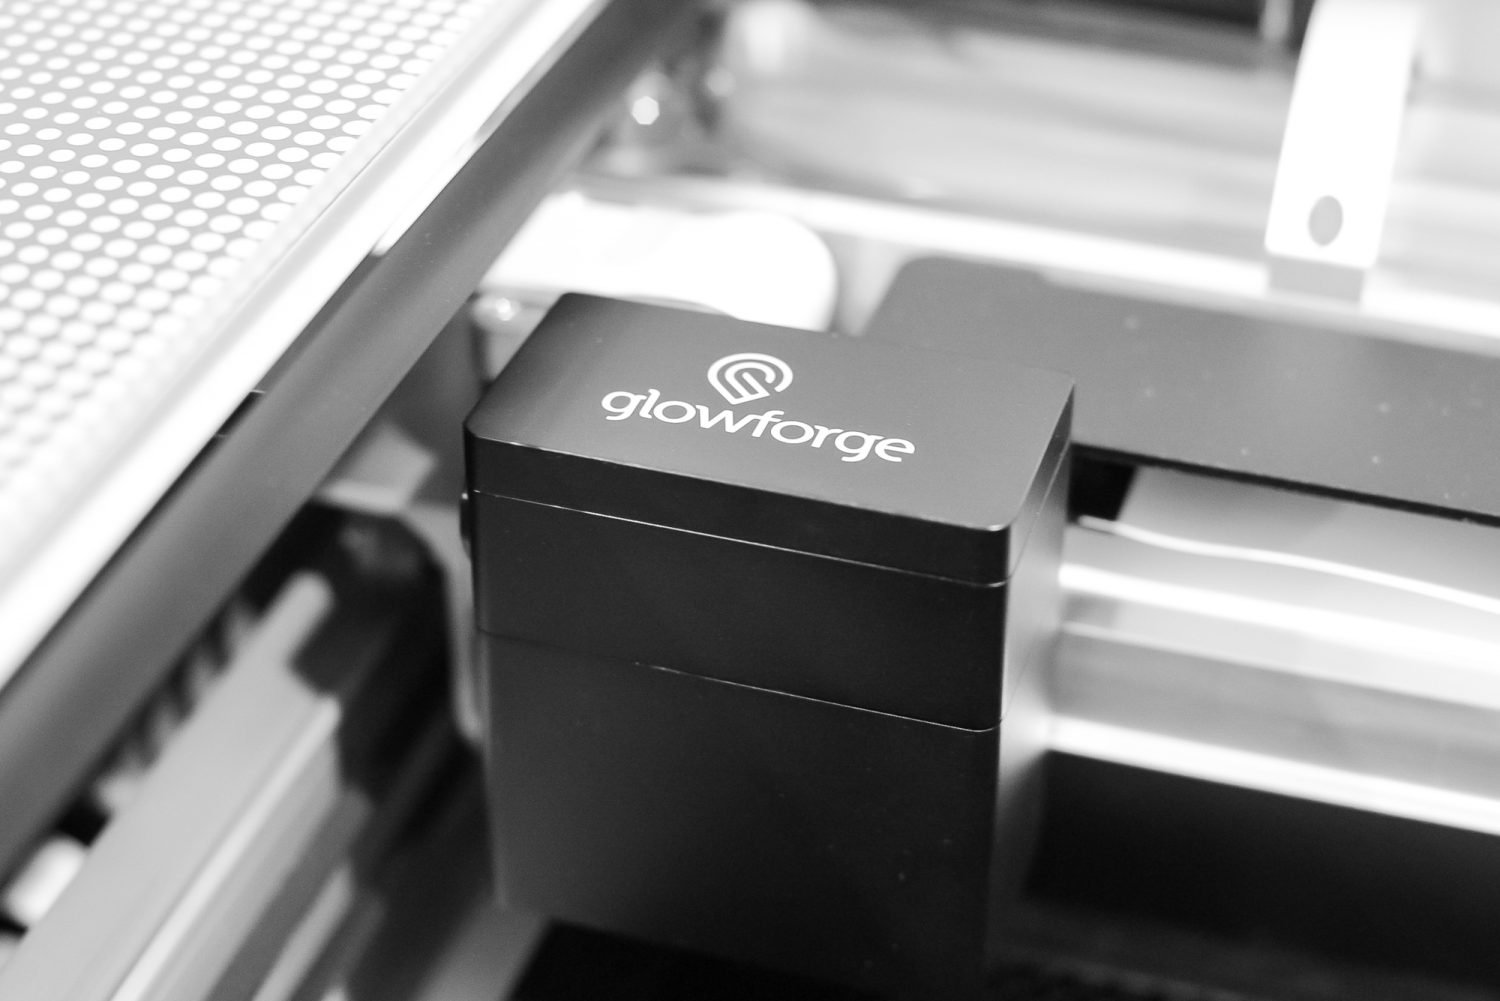 Glowforge laser head in machine.